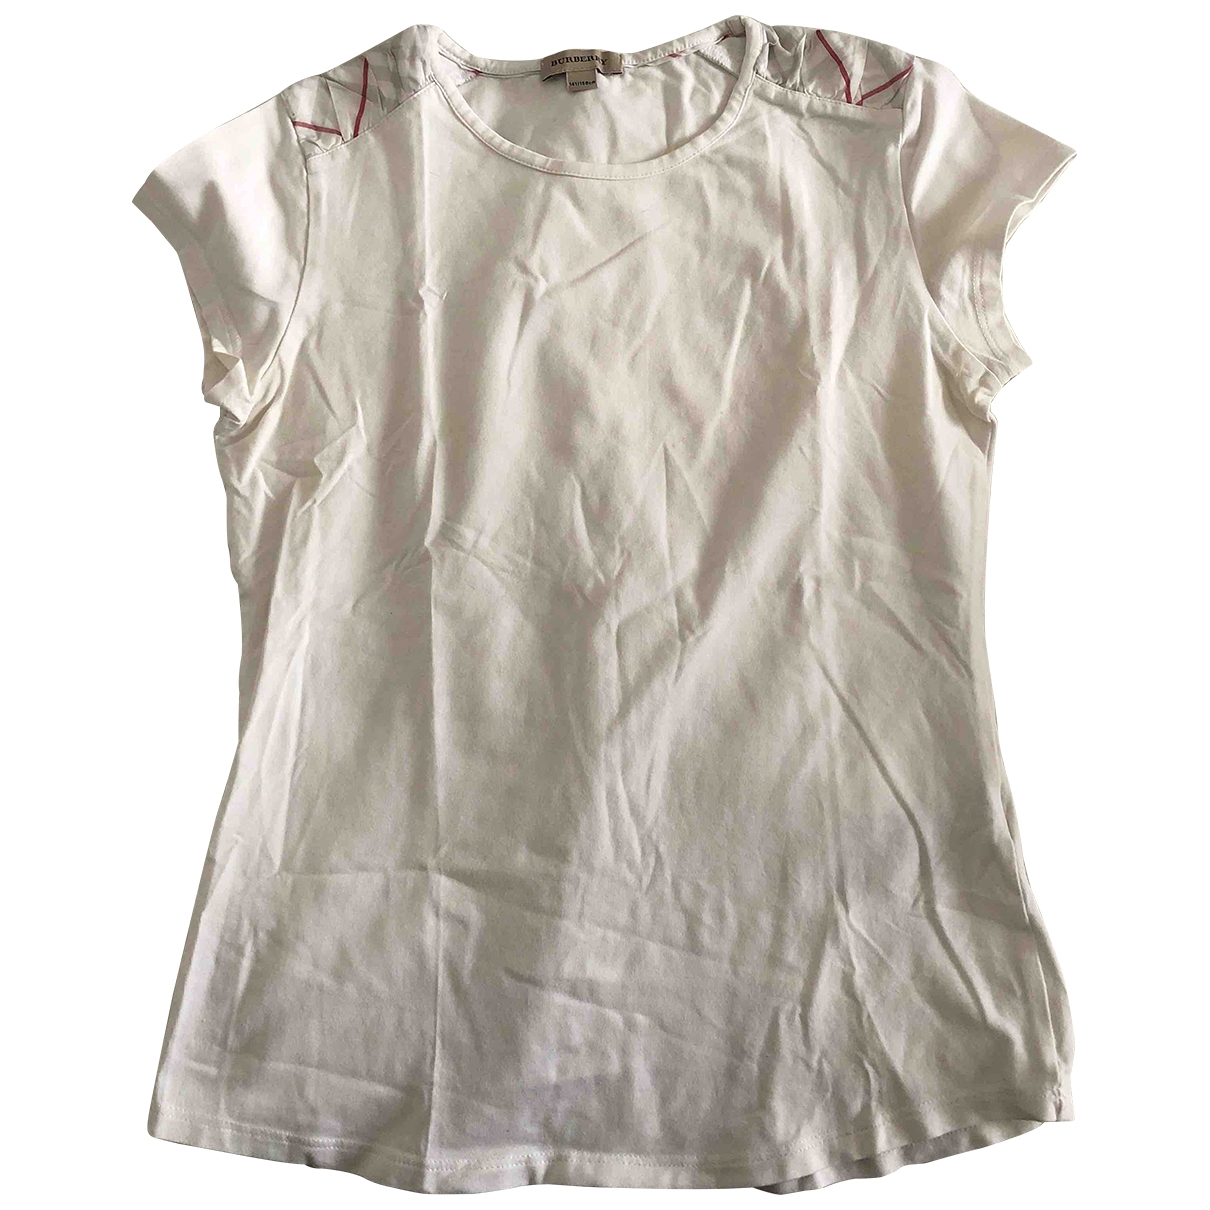 Burberry \N White Cotton  top for Kids 14 years - S FR